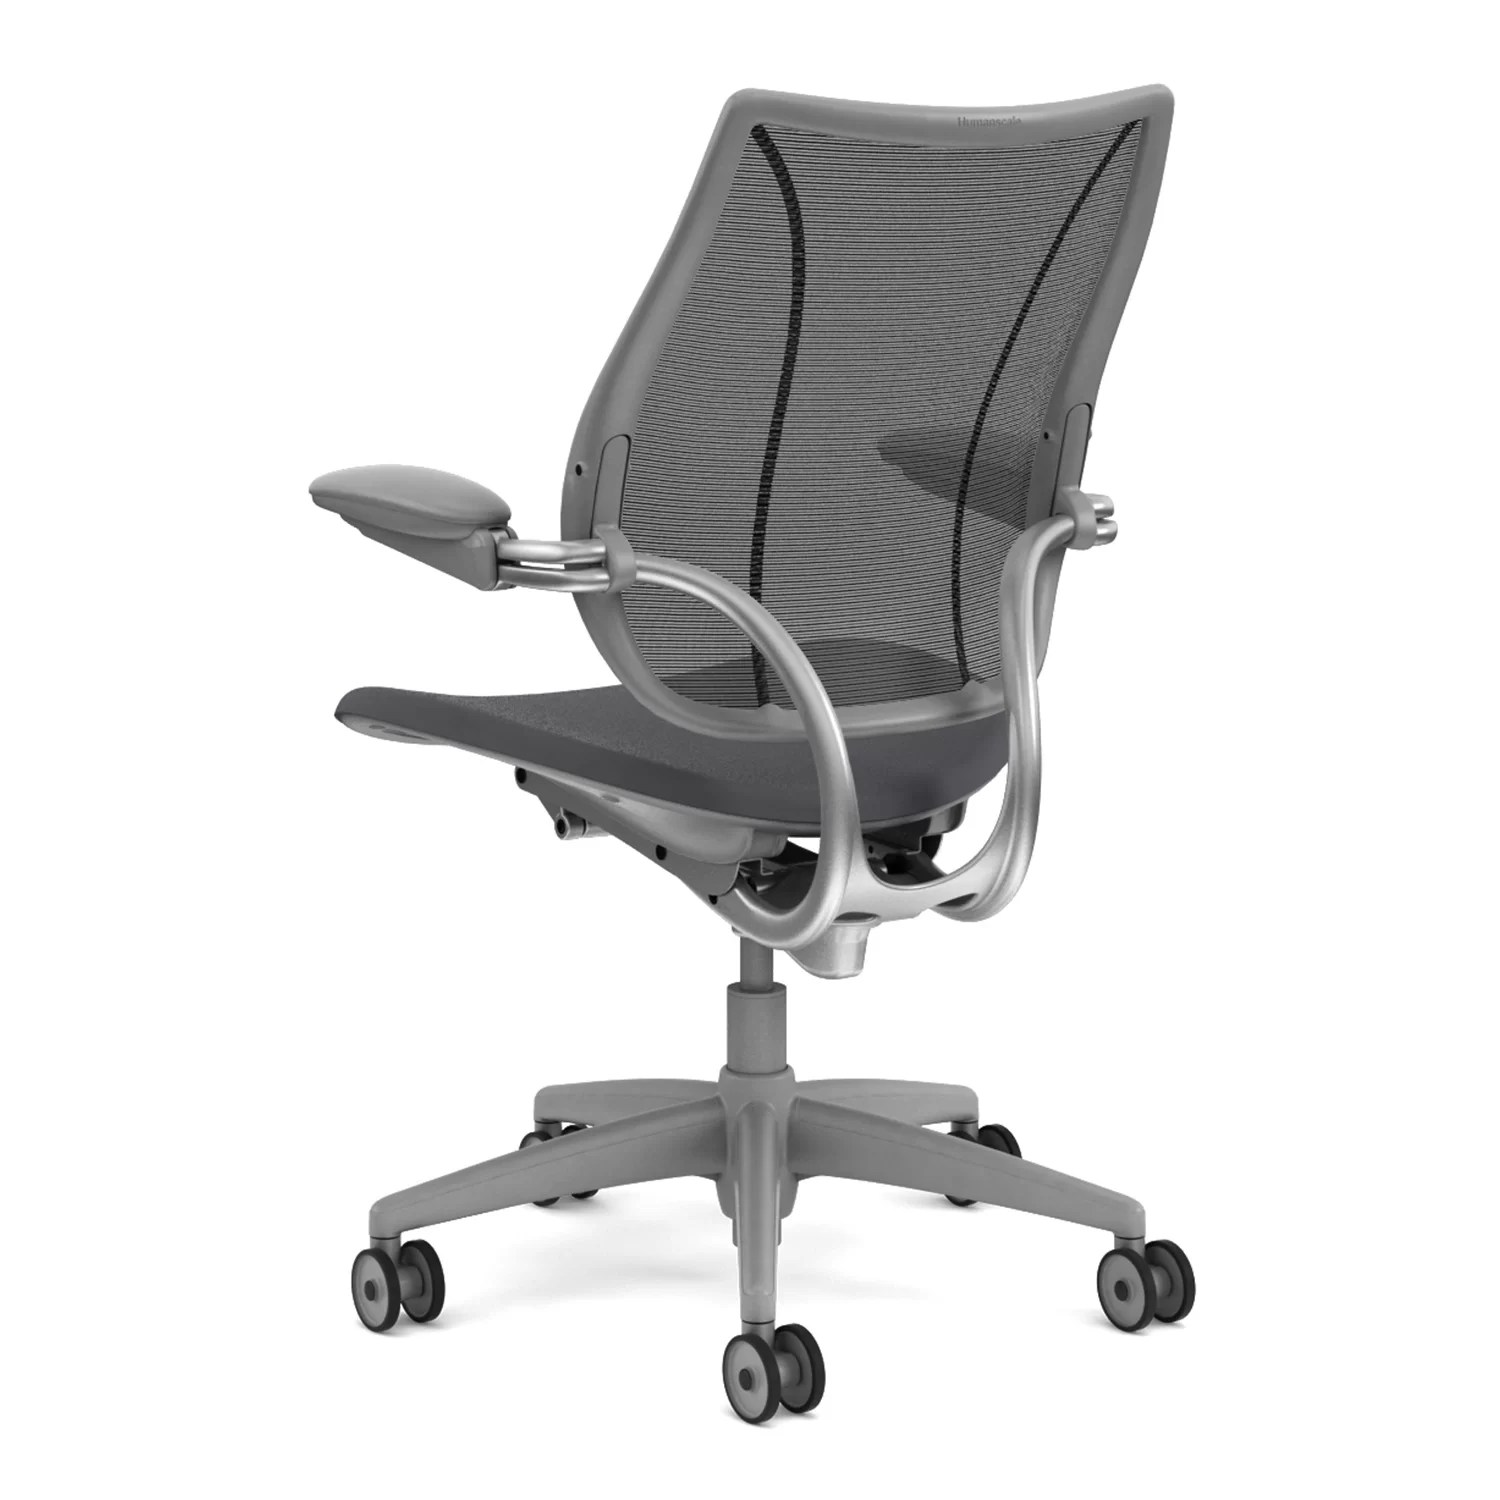 Humanscale Liberty Chair Humanscale Liberty Task Chair And Reviews Wayfair